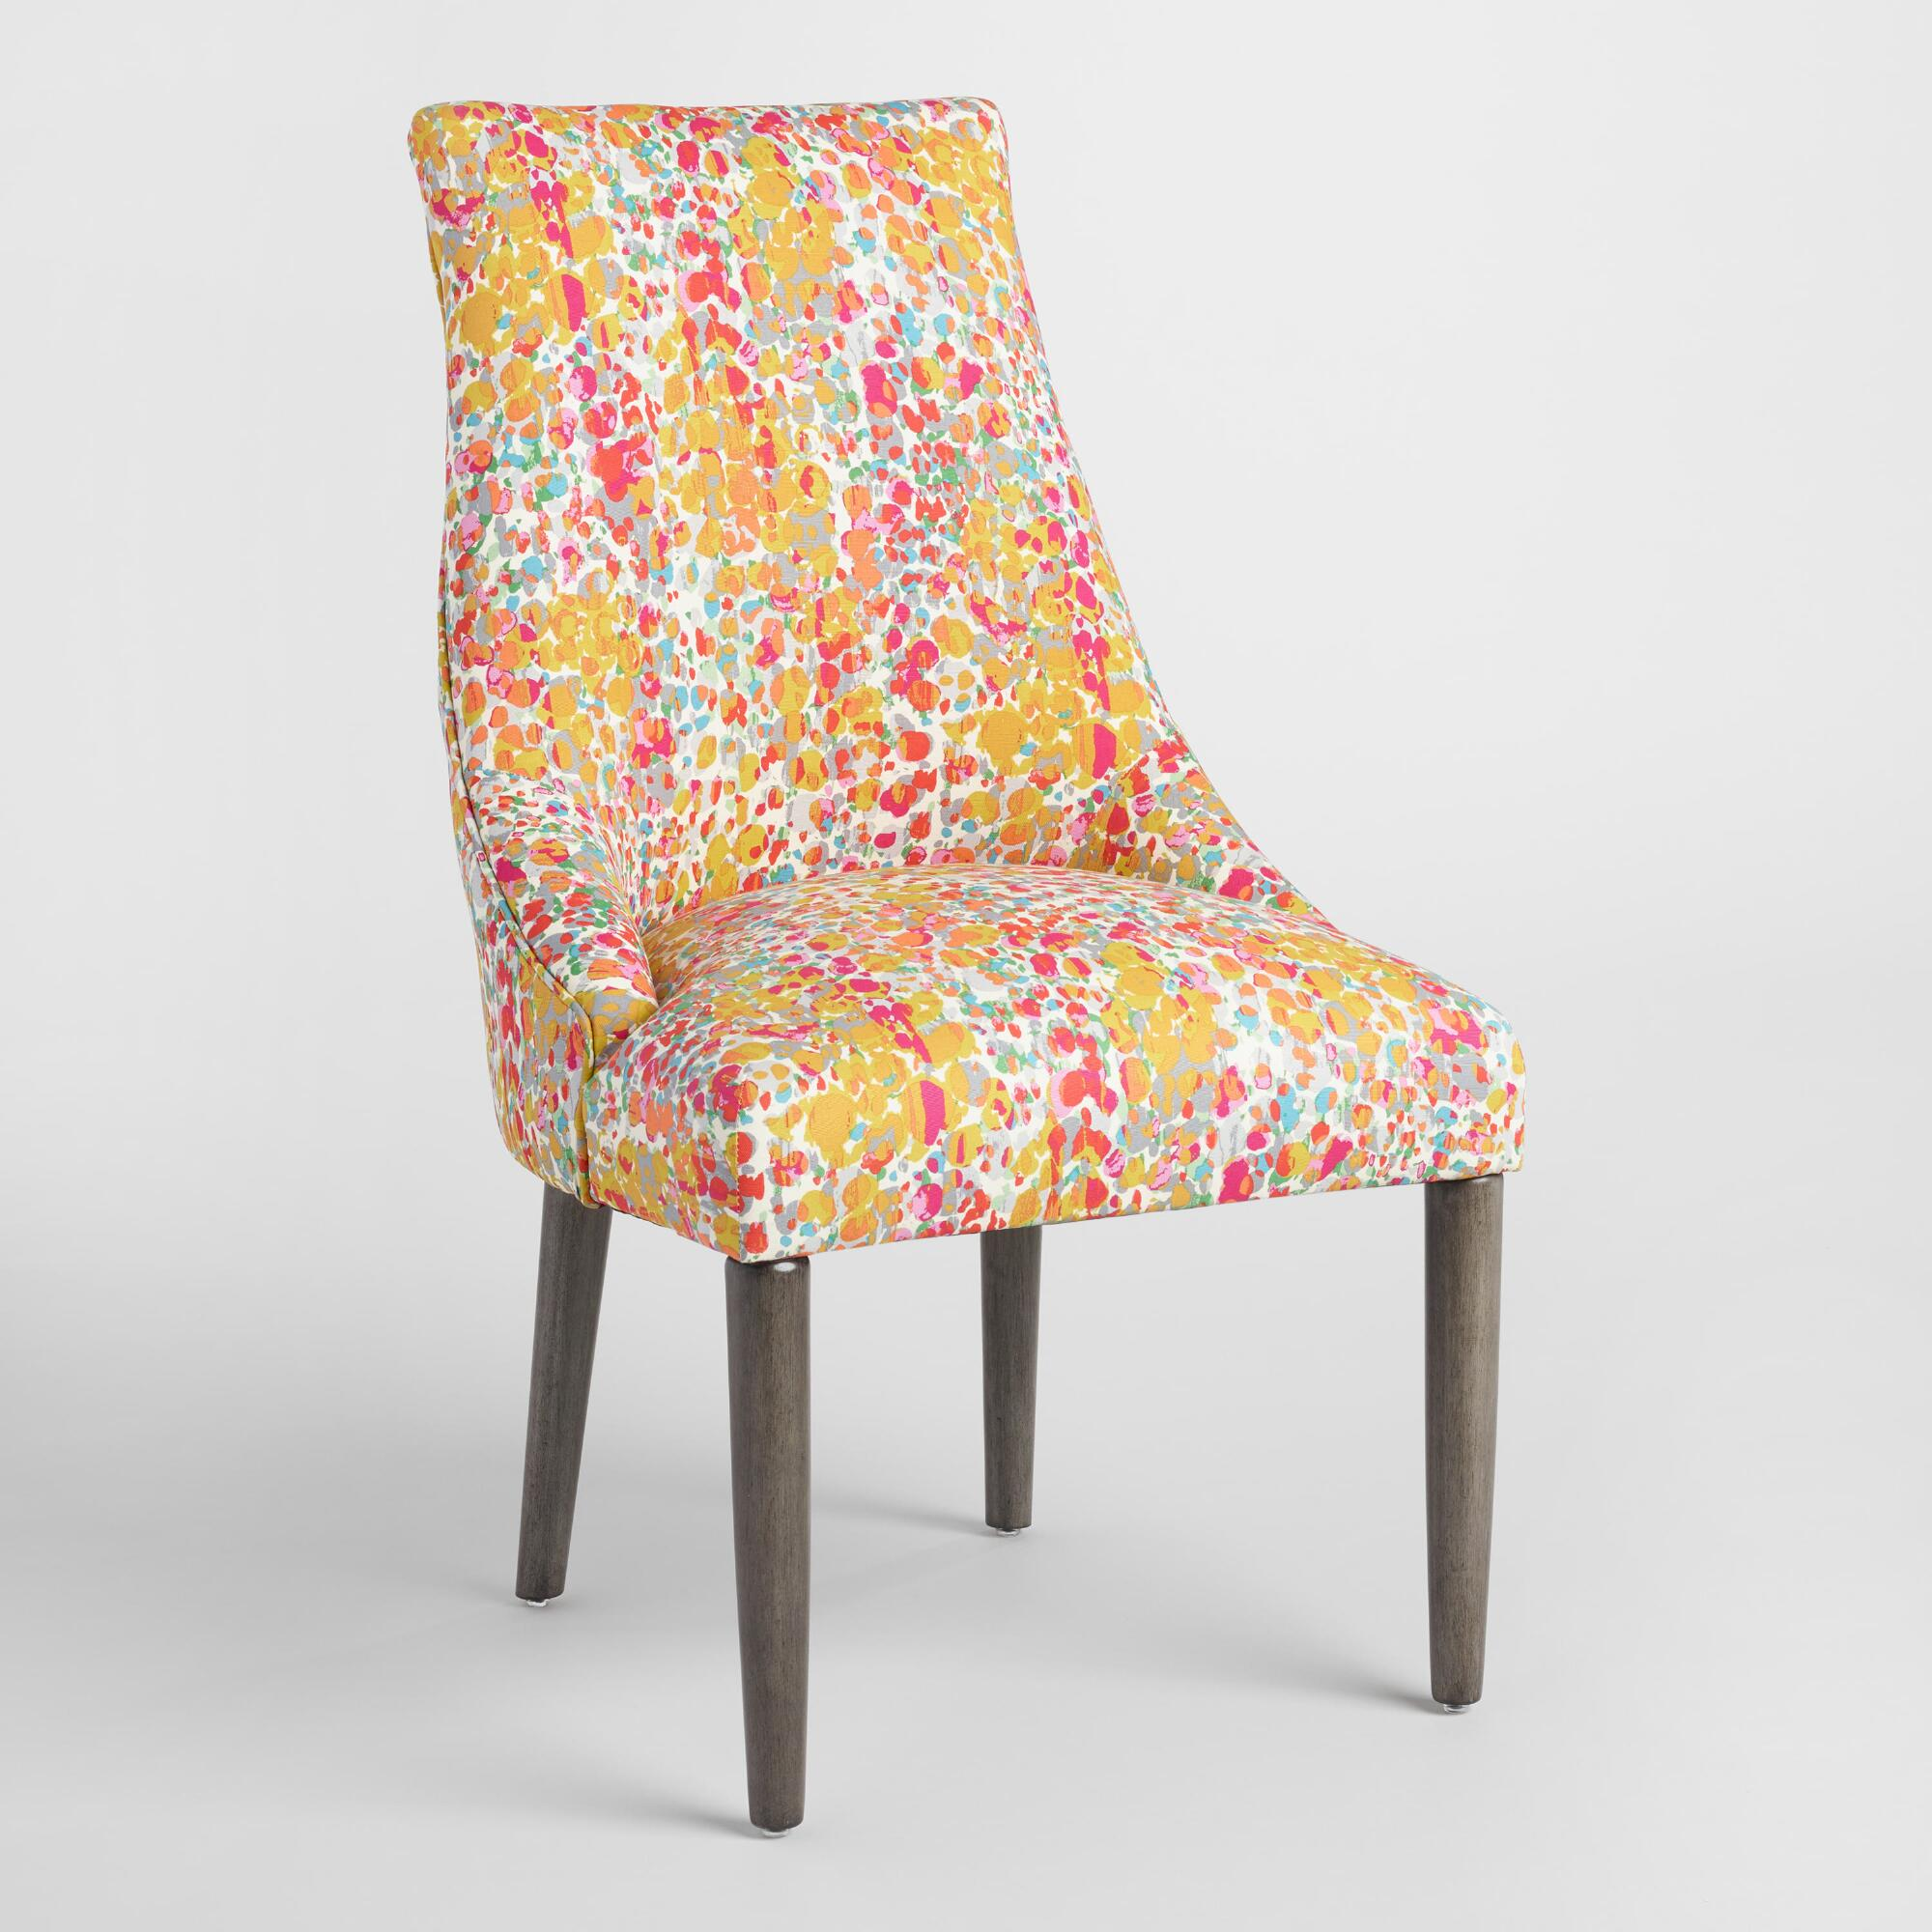 Choosing the best upholstered dining room chairs darling and daisy - 2000 Clarisse Portter Upholstered Dining Chairs Set Of 2 World Market 2000 This Year S 731 Upholstered